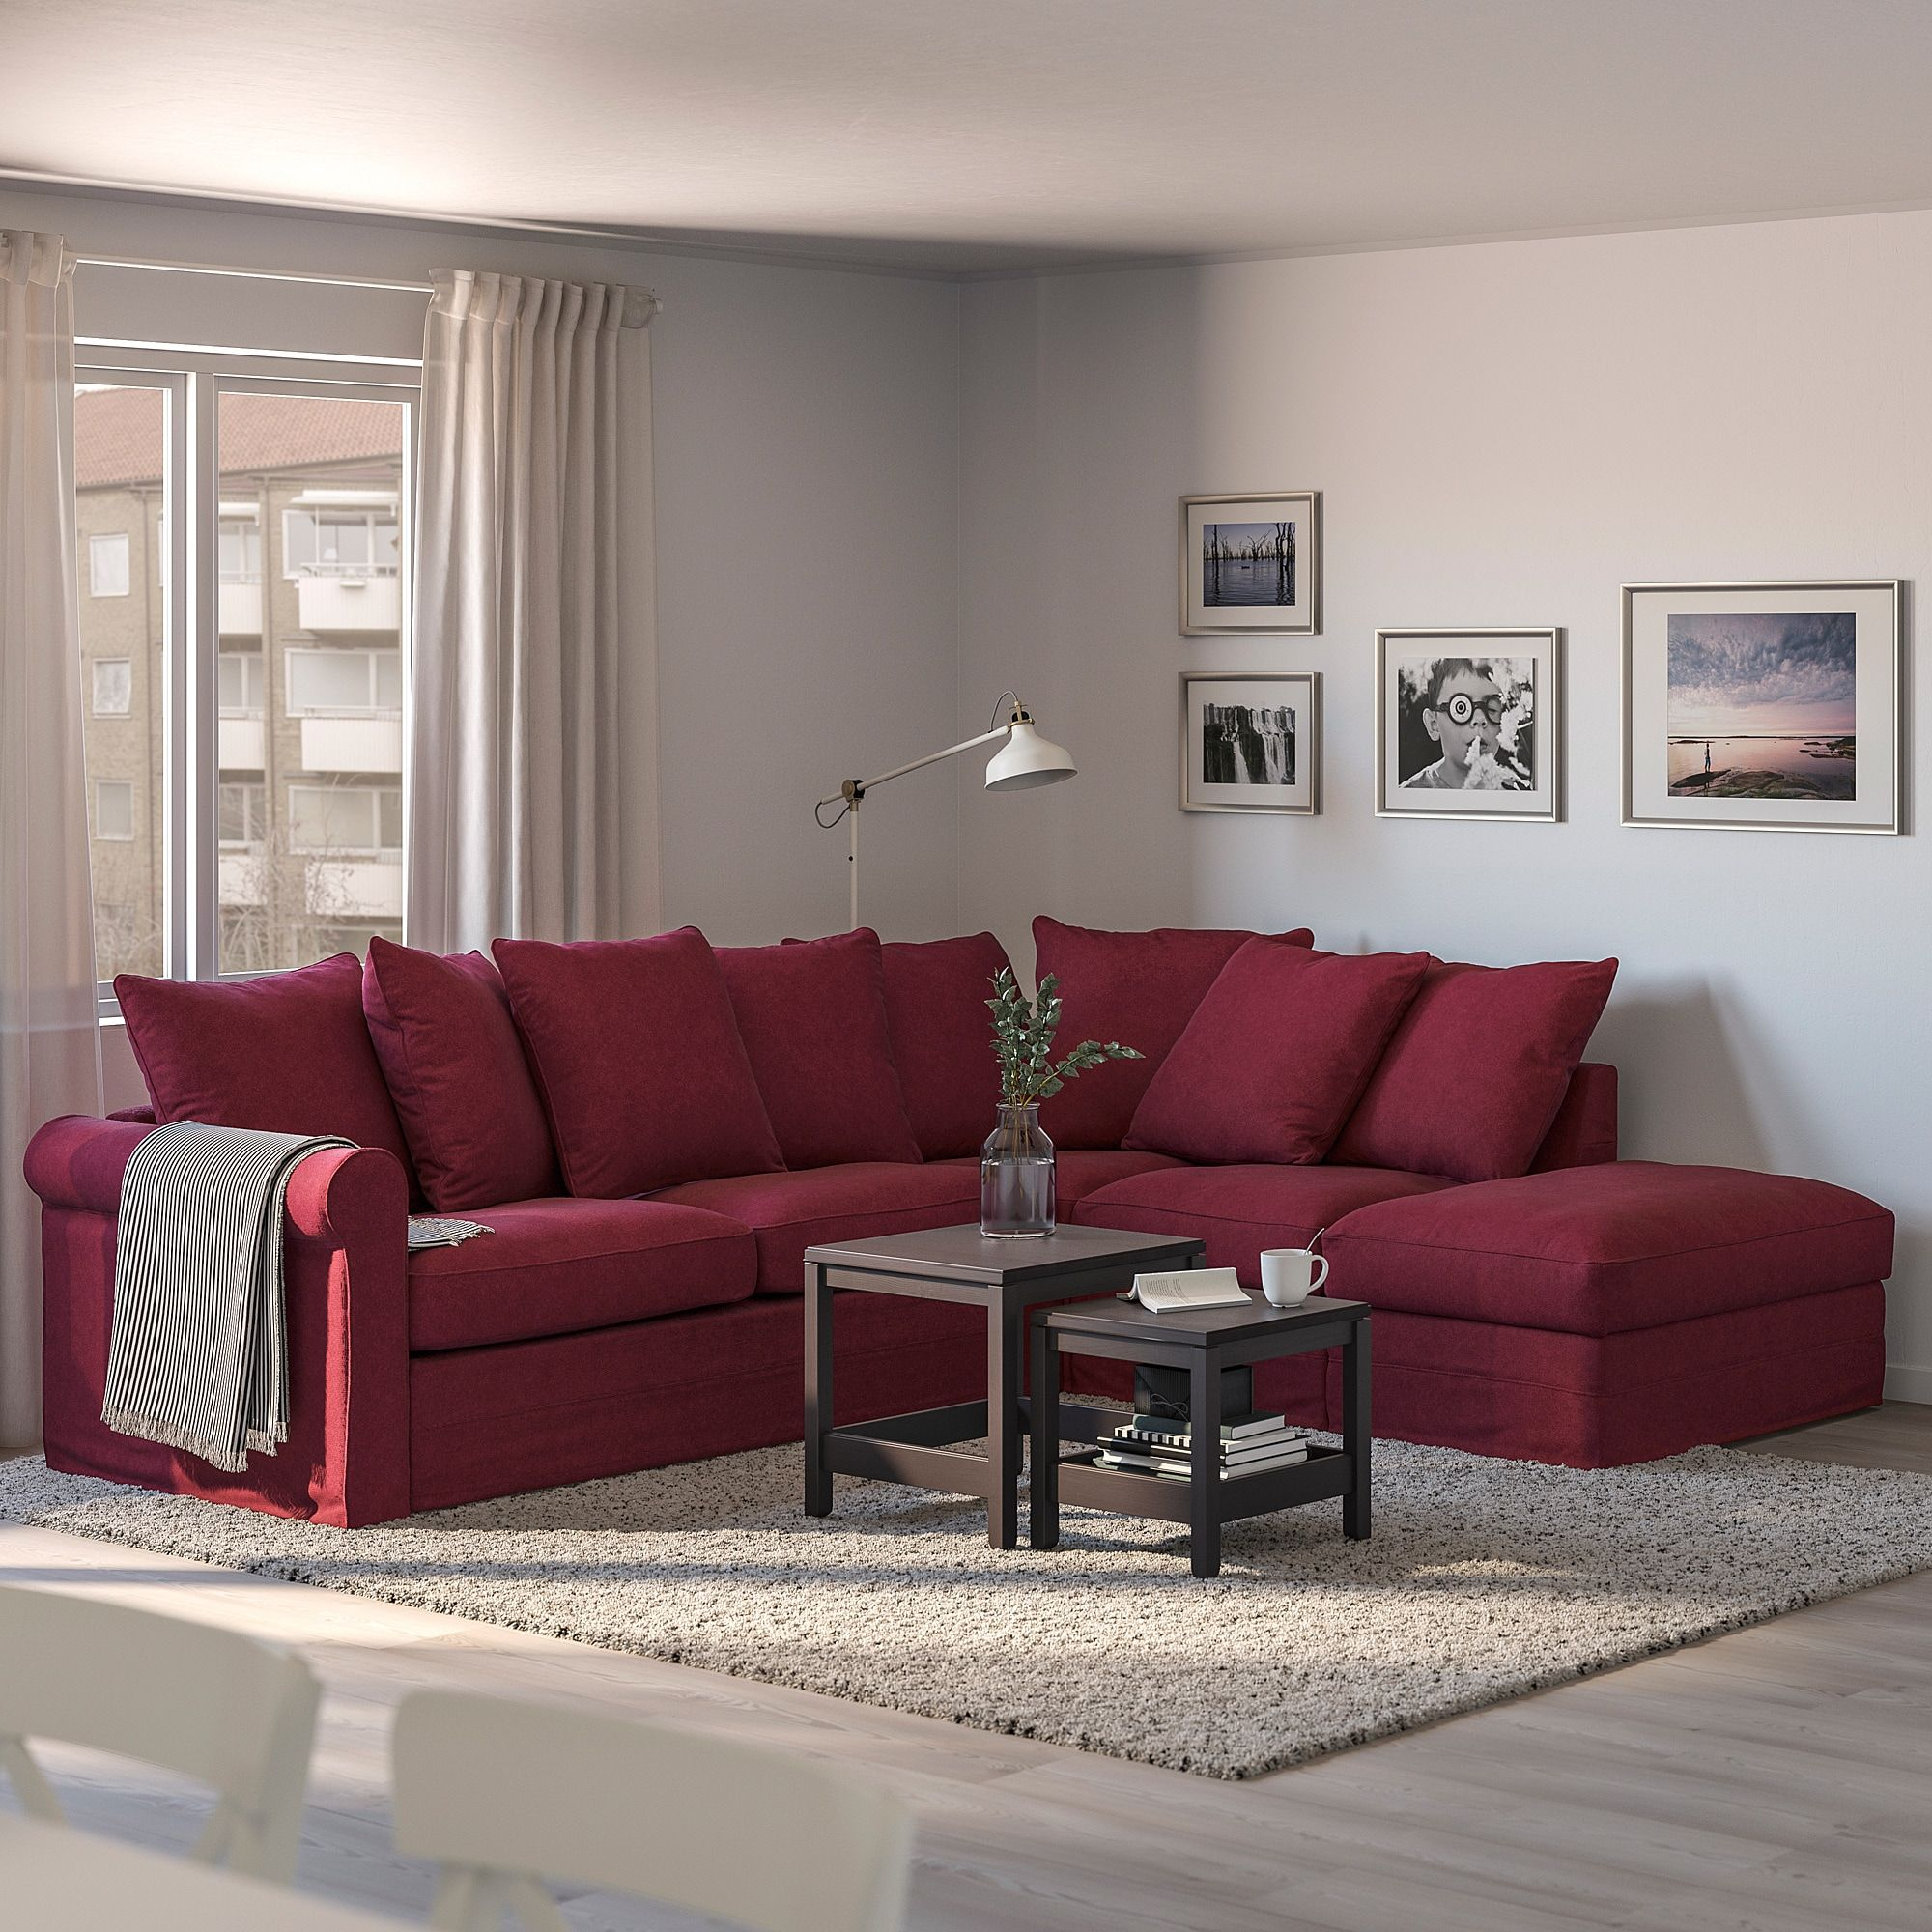 GRÖNLID Corner sofabed, 4seat, with open end/Tallmyra